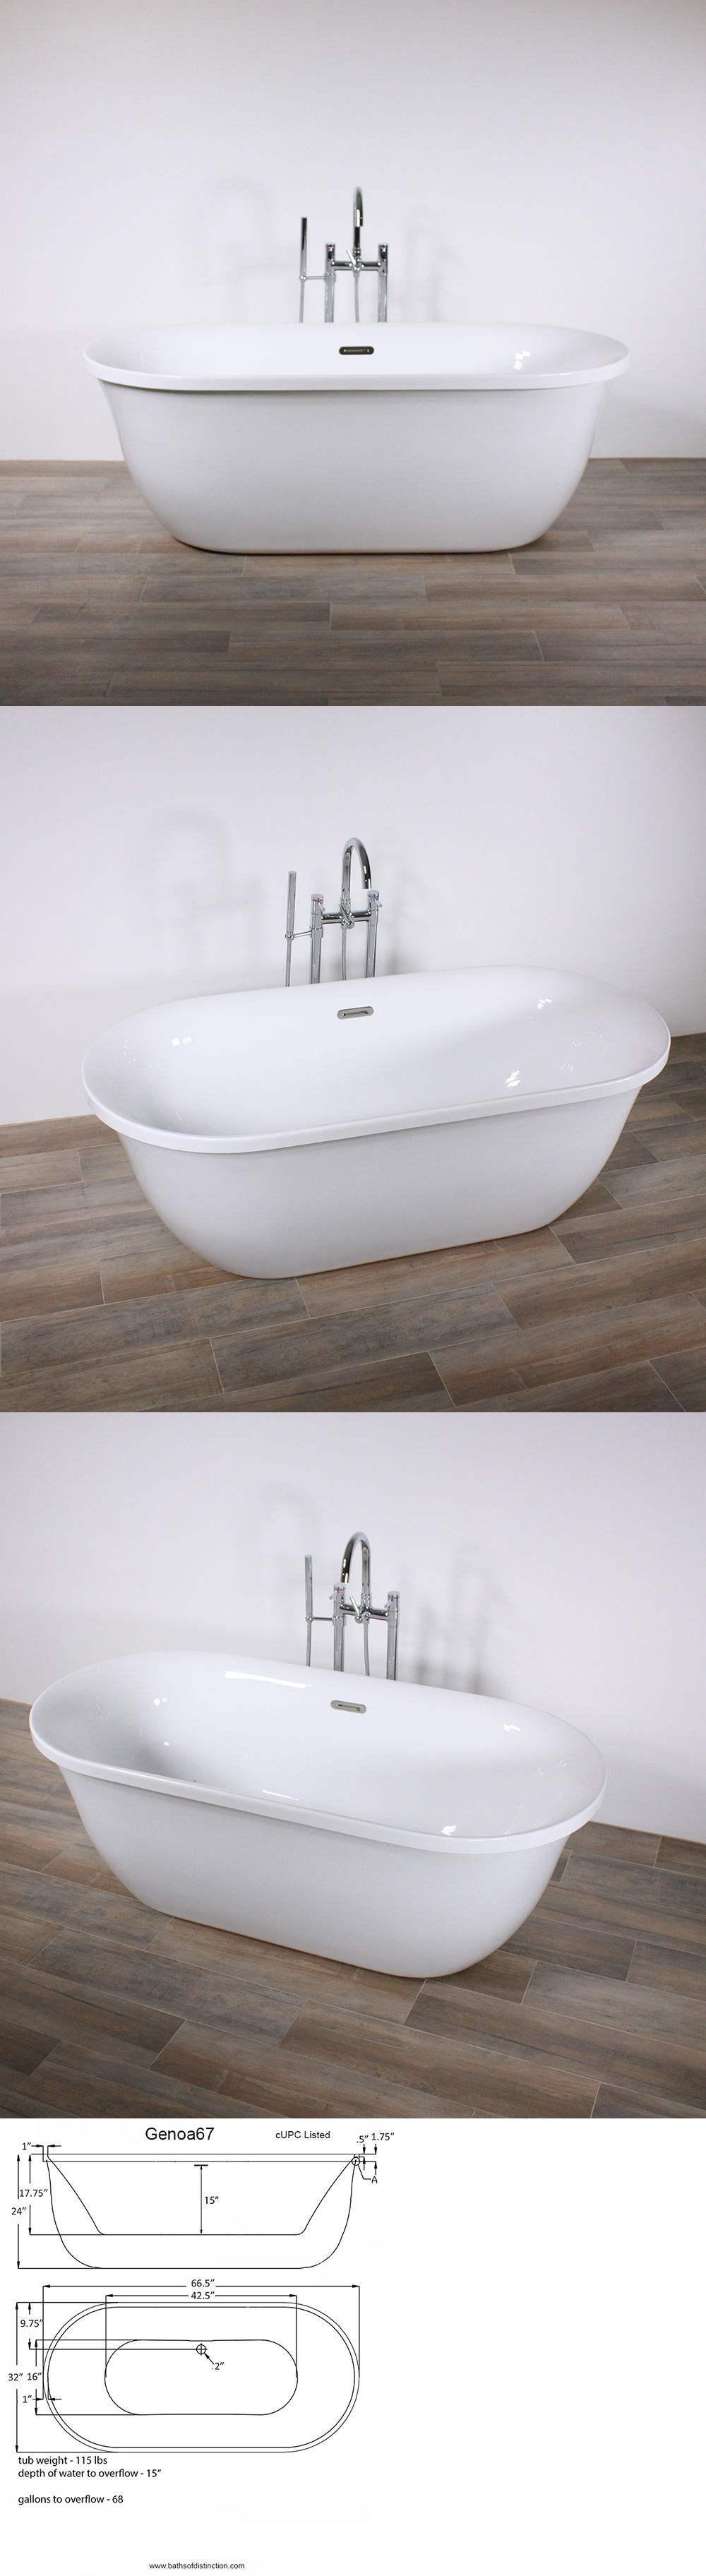 Bathtubs 42025: Freestanding Bathtub Genoa 67 Oval Acrylic Tub With ...